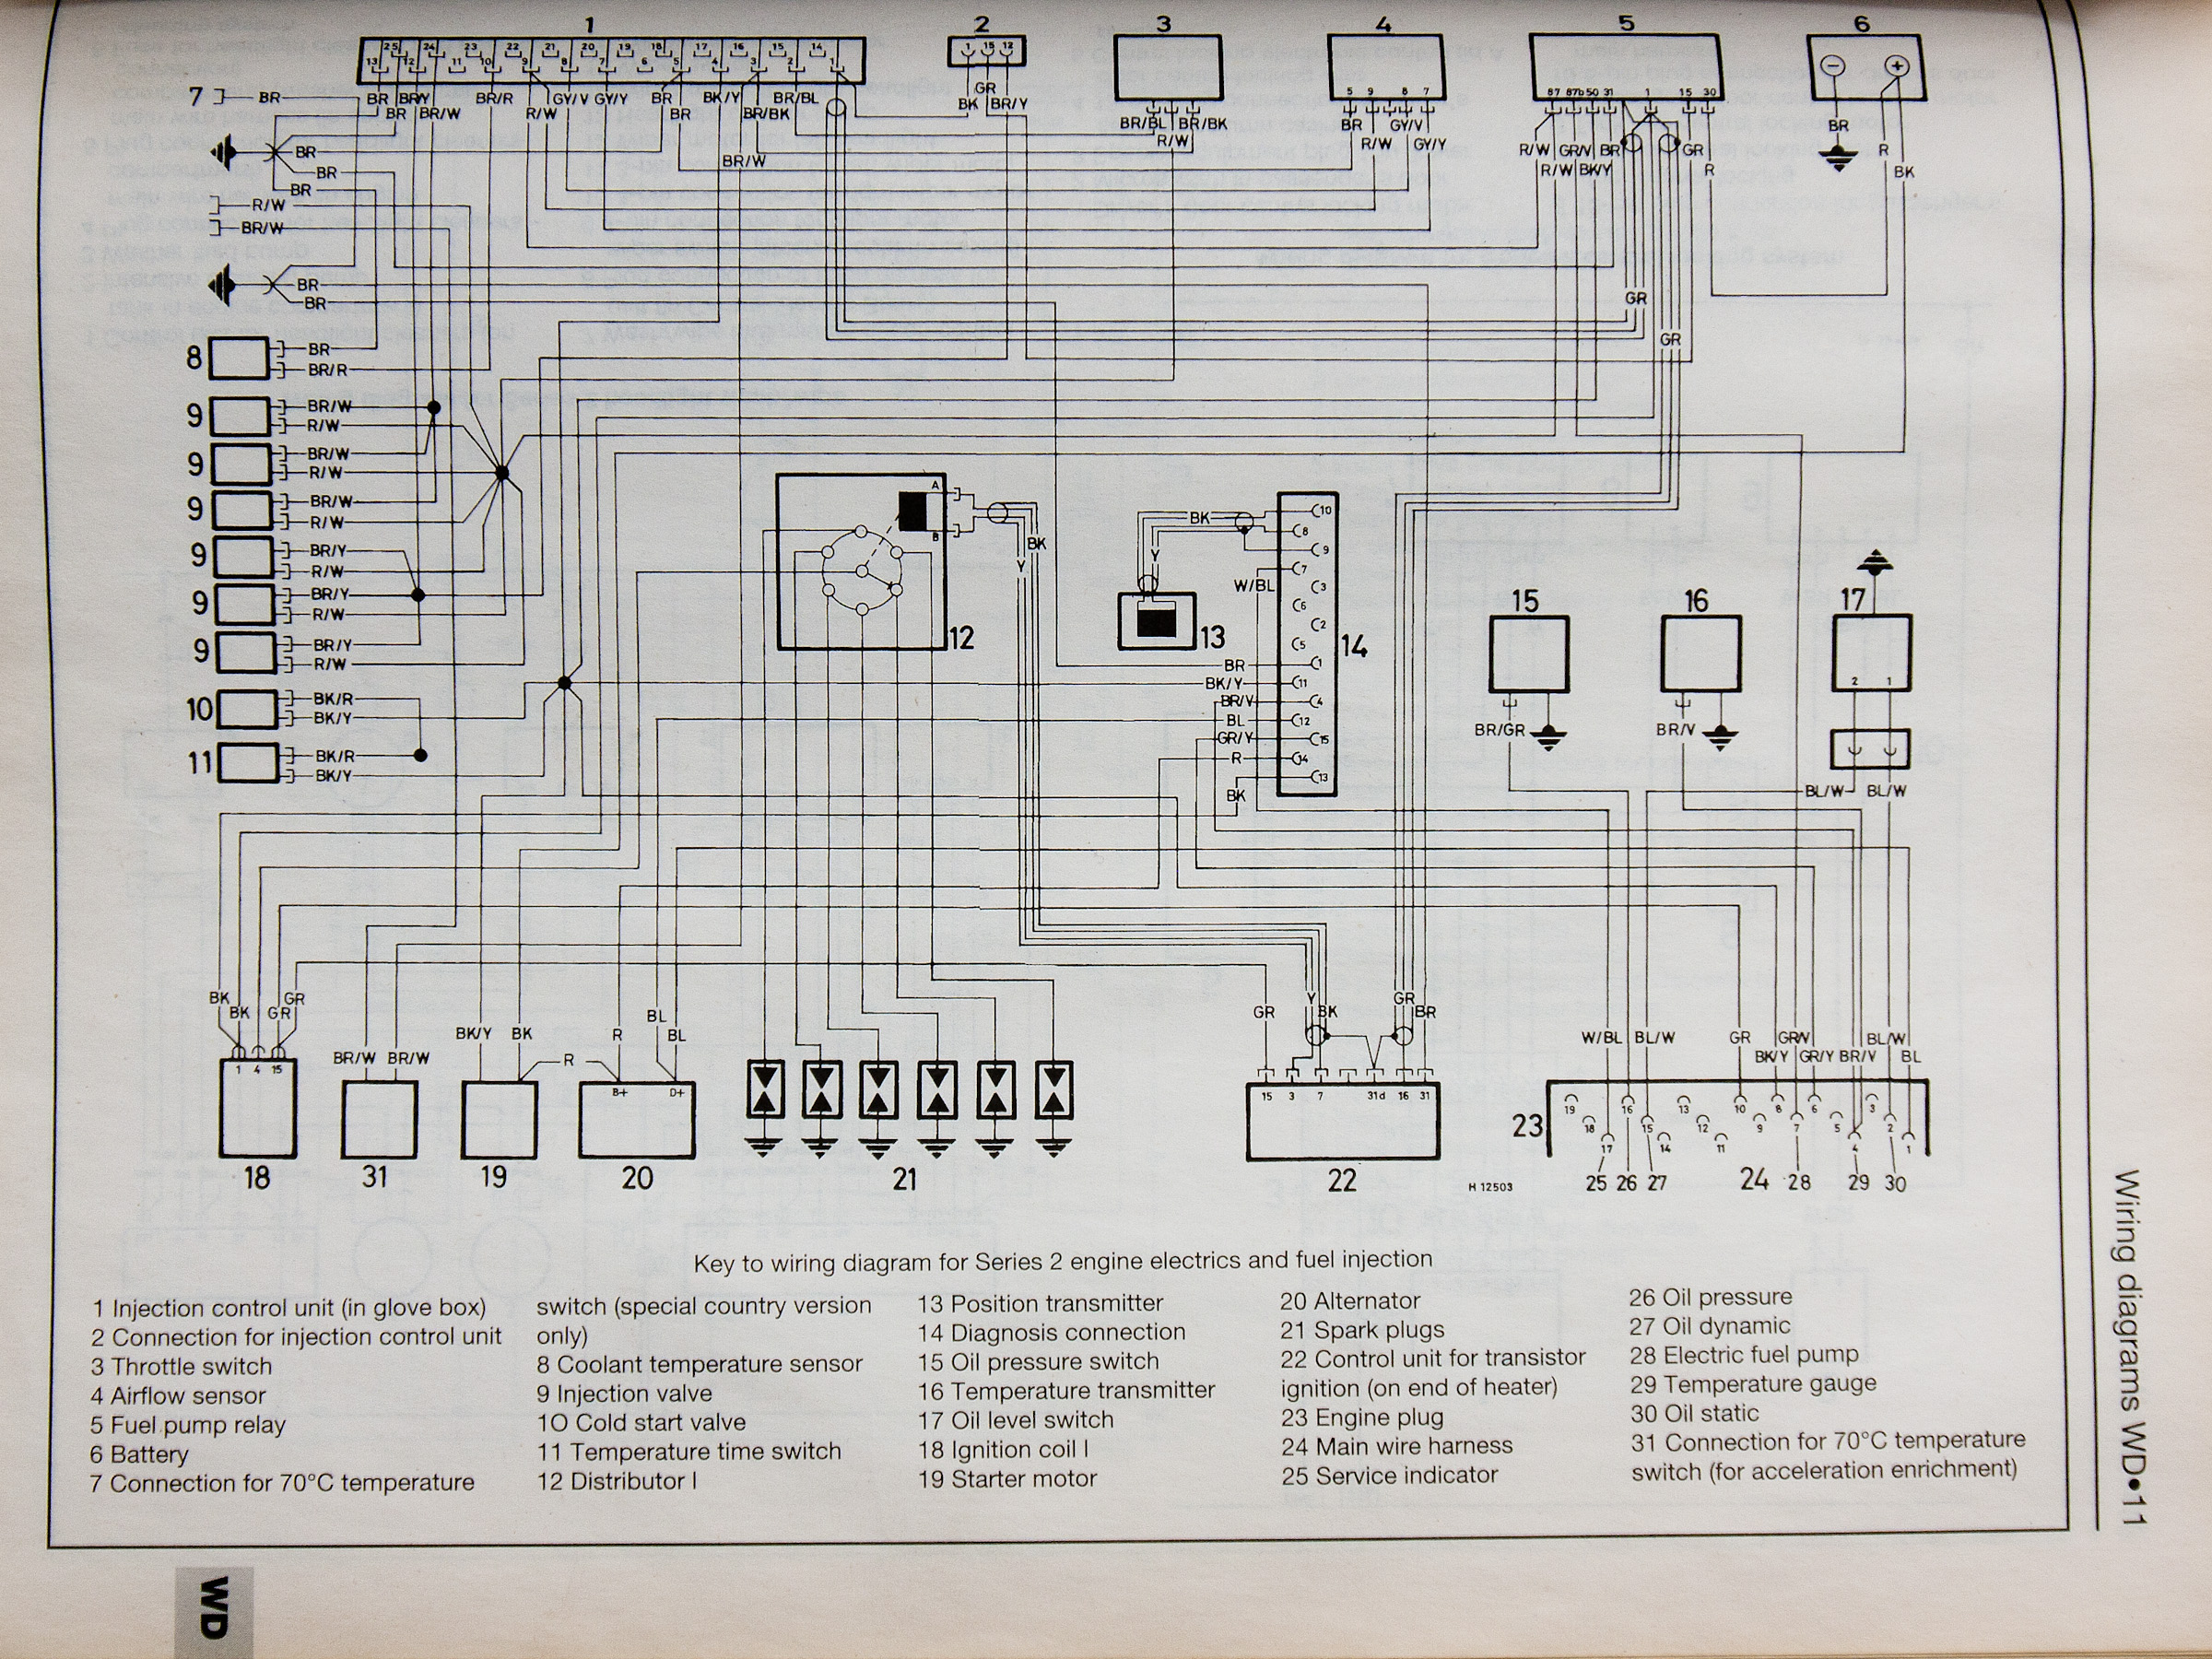 wiring diagram for 1996 club car 48 volt technical bmw e30 wiring diagram bestbreweries co 356c wiring diagram #5